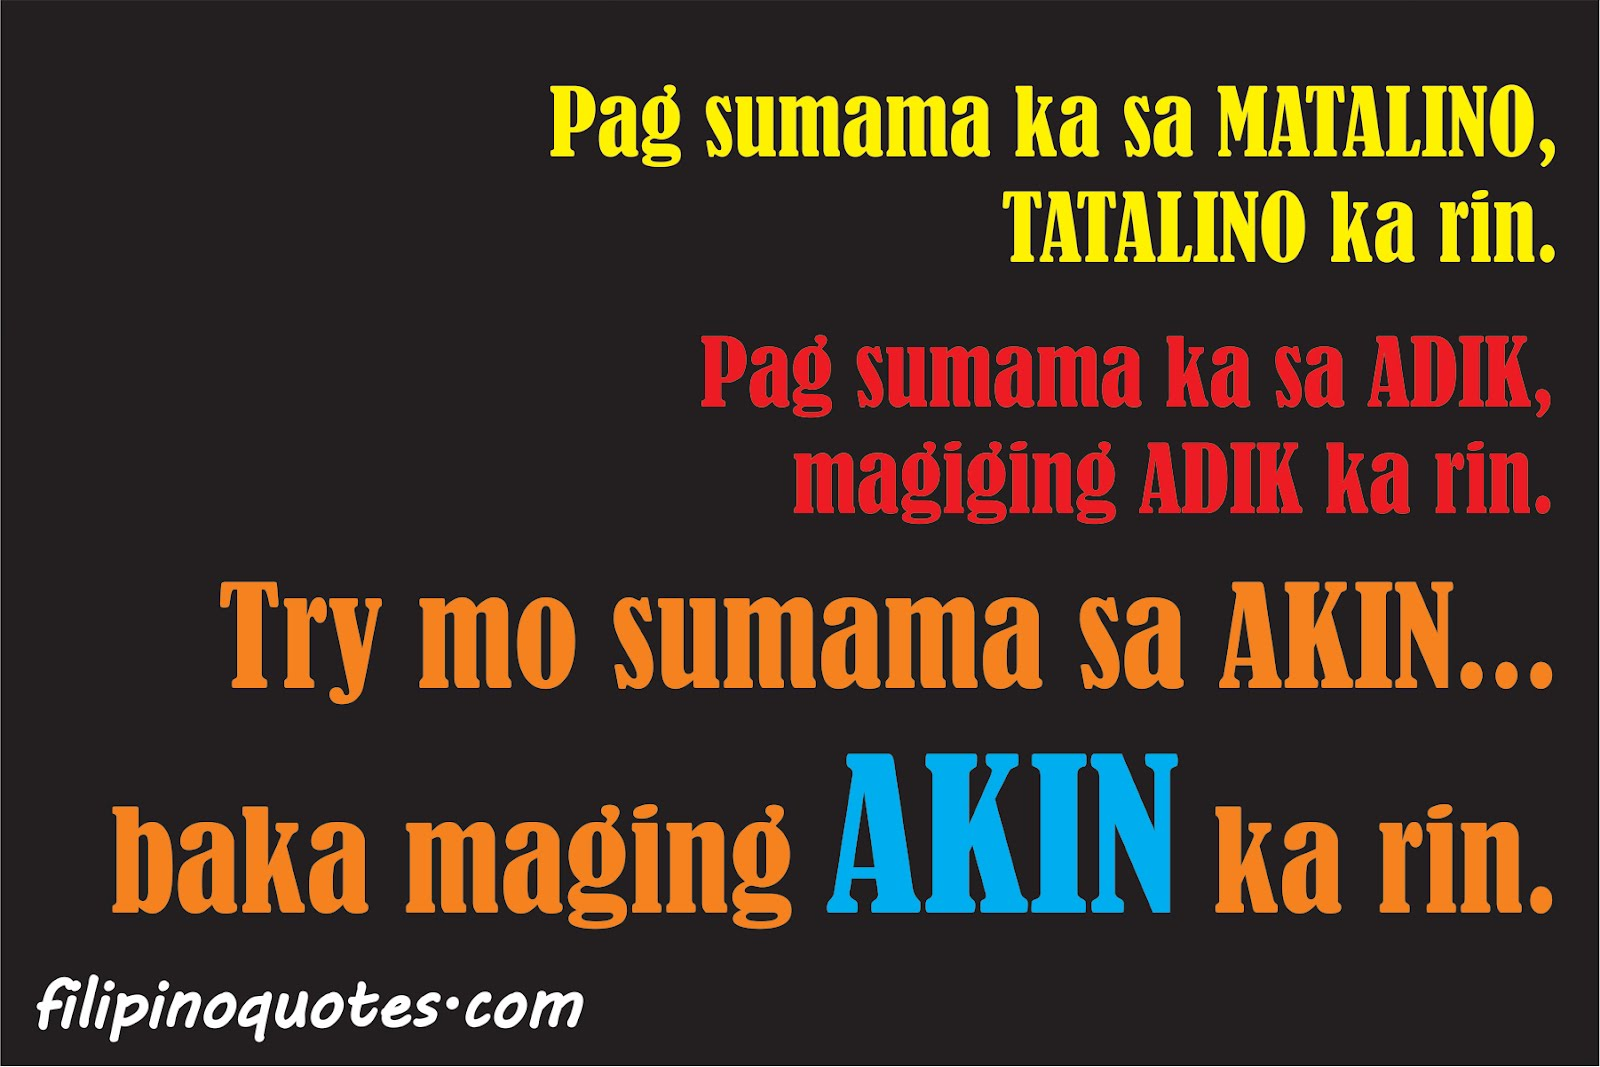 Funny Love Quotes From Movies Quotes From Movies Tagalog Painful Love Quotes Tagalog Quotesgram